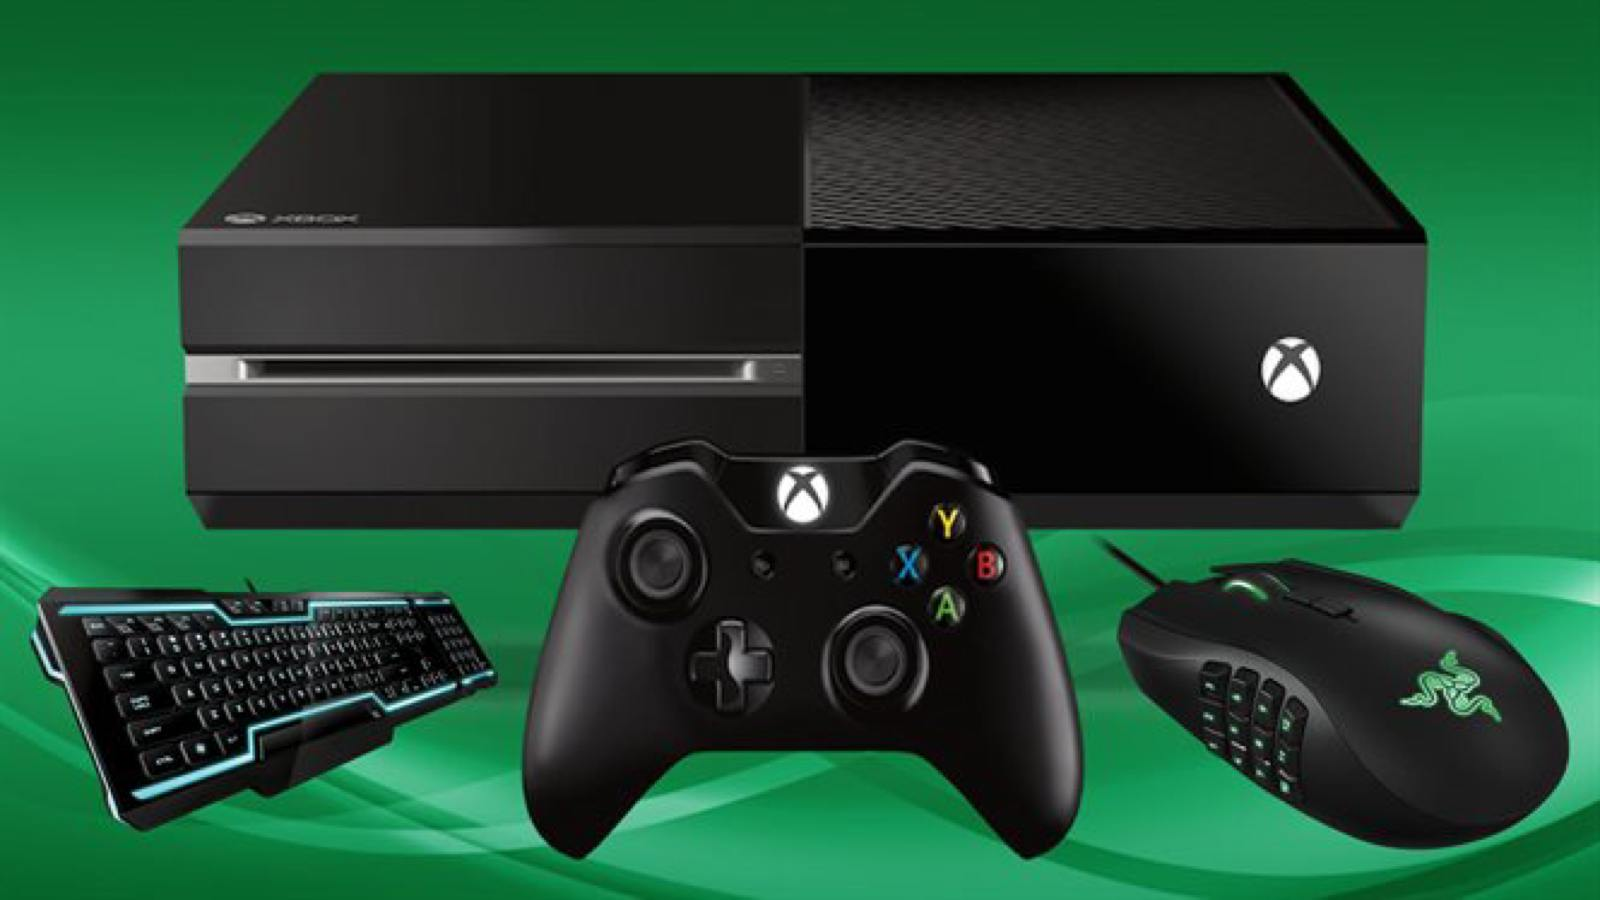 Thankfully, keyboard and mouse support to stay on Xbox One